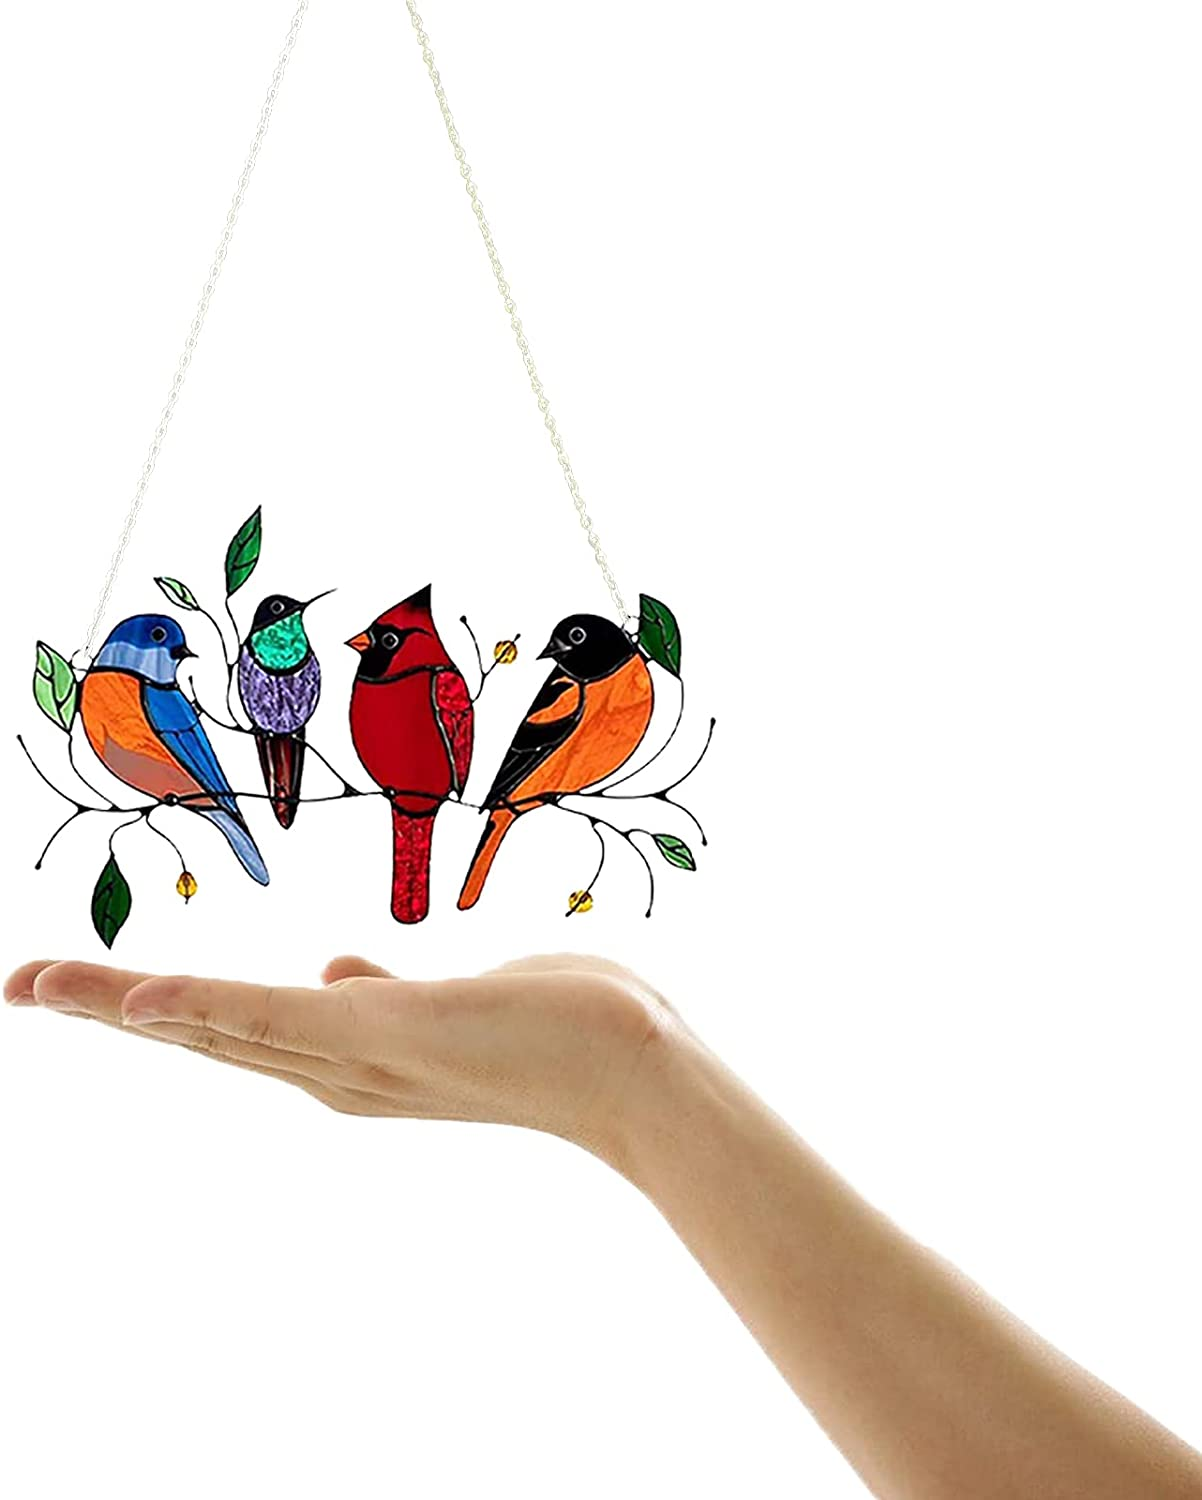 Multicolor Birds on a Wire High Stained Acrylic Window Panel, Art Pendant Home Decoration for Patio Yard, Personality Window Hangings, Gifts for Bird Lover